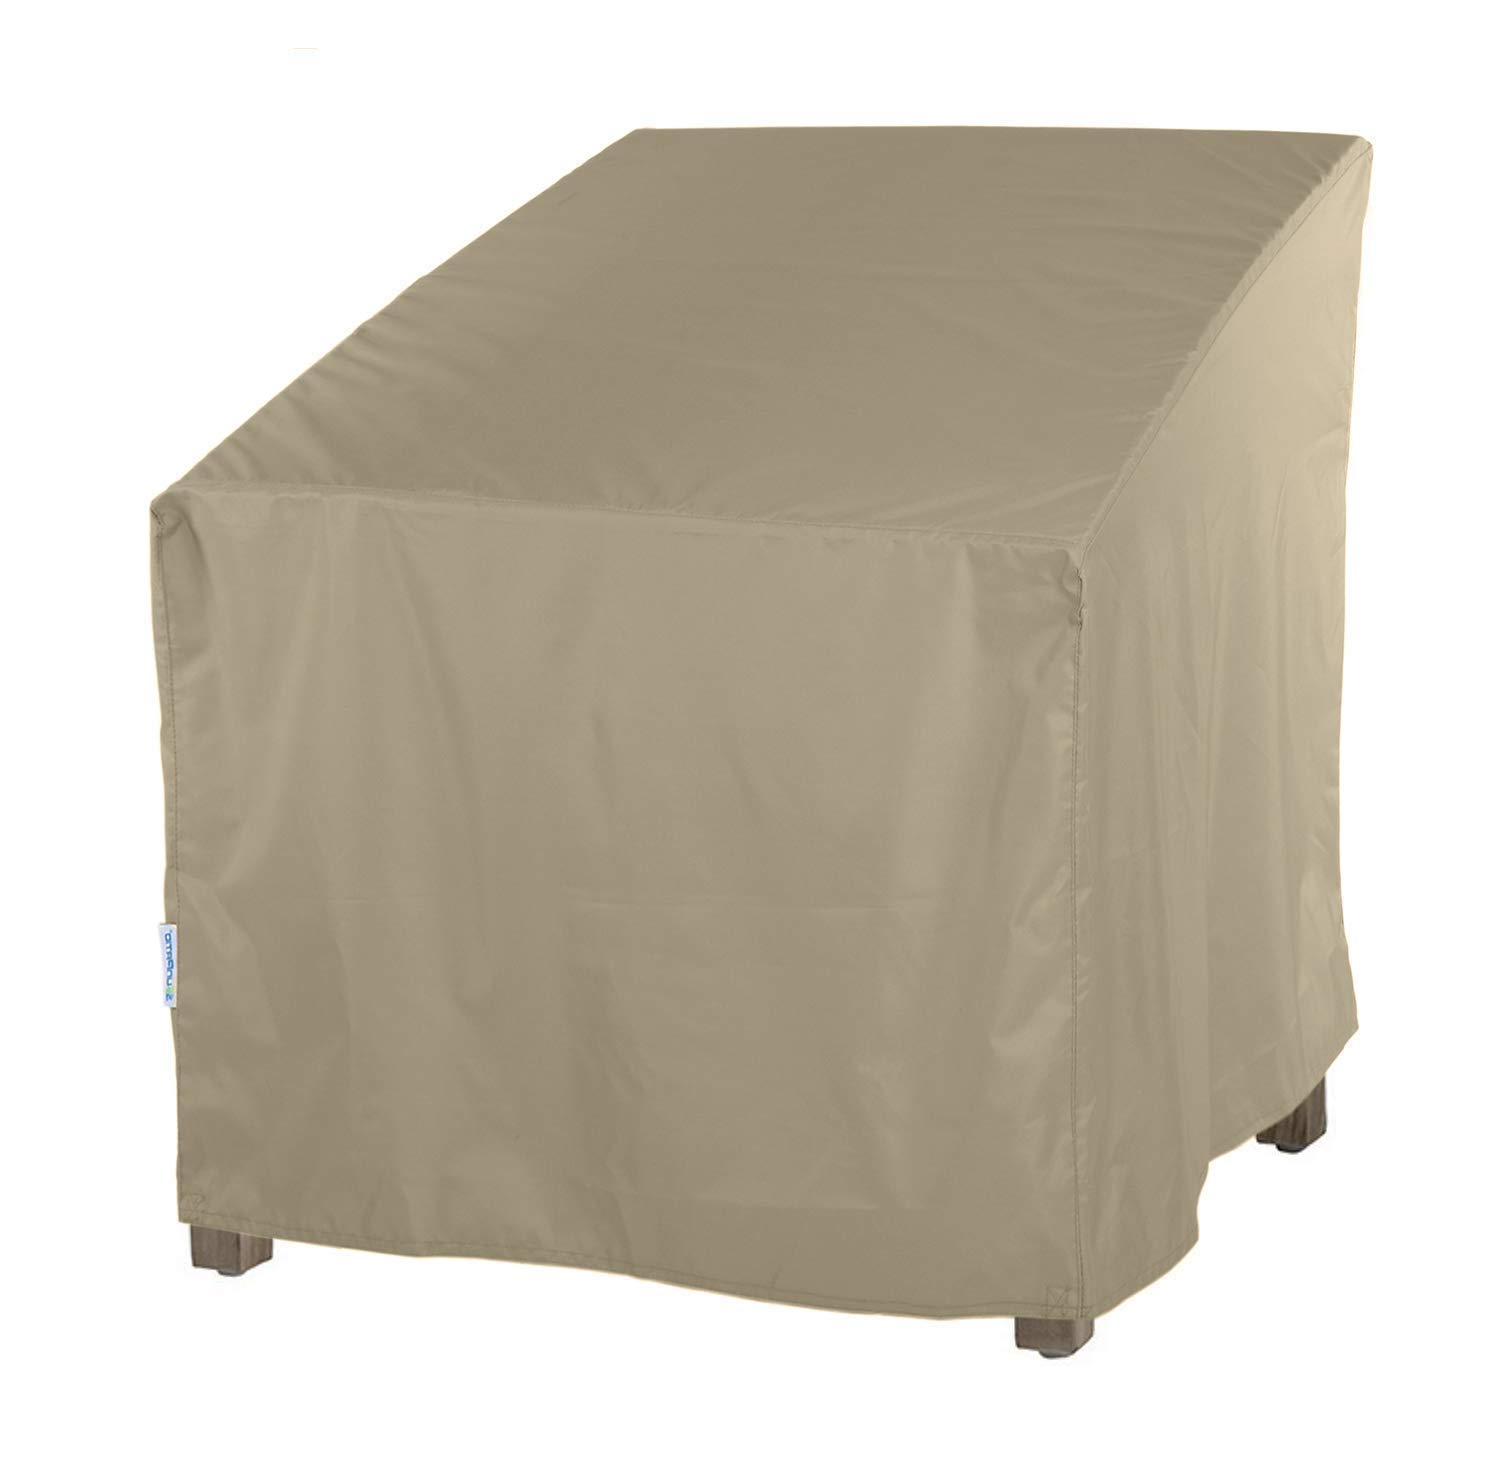 SunPatio Outdoor Oversized Club Chair Cover, Lightweight, Water Resistant, Helpful Air Vents, All Weather Protection, 40'' L x 34'' W x 39'' H, Neutral Taupe